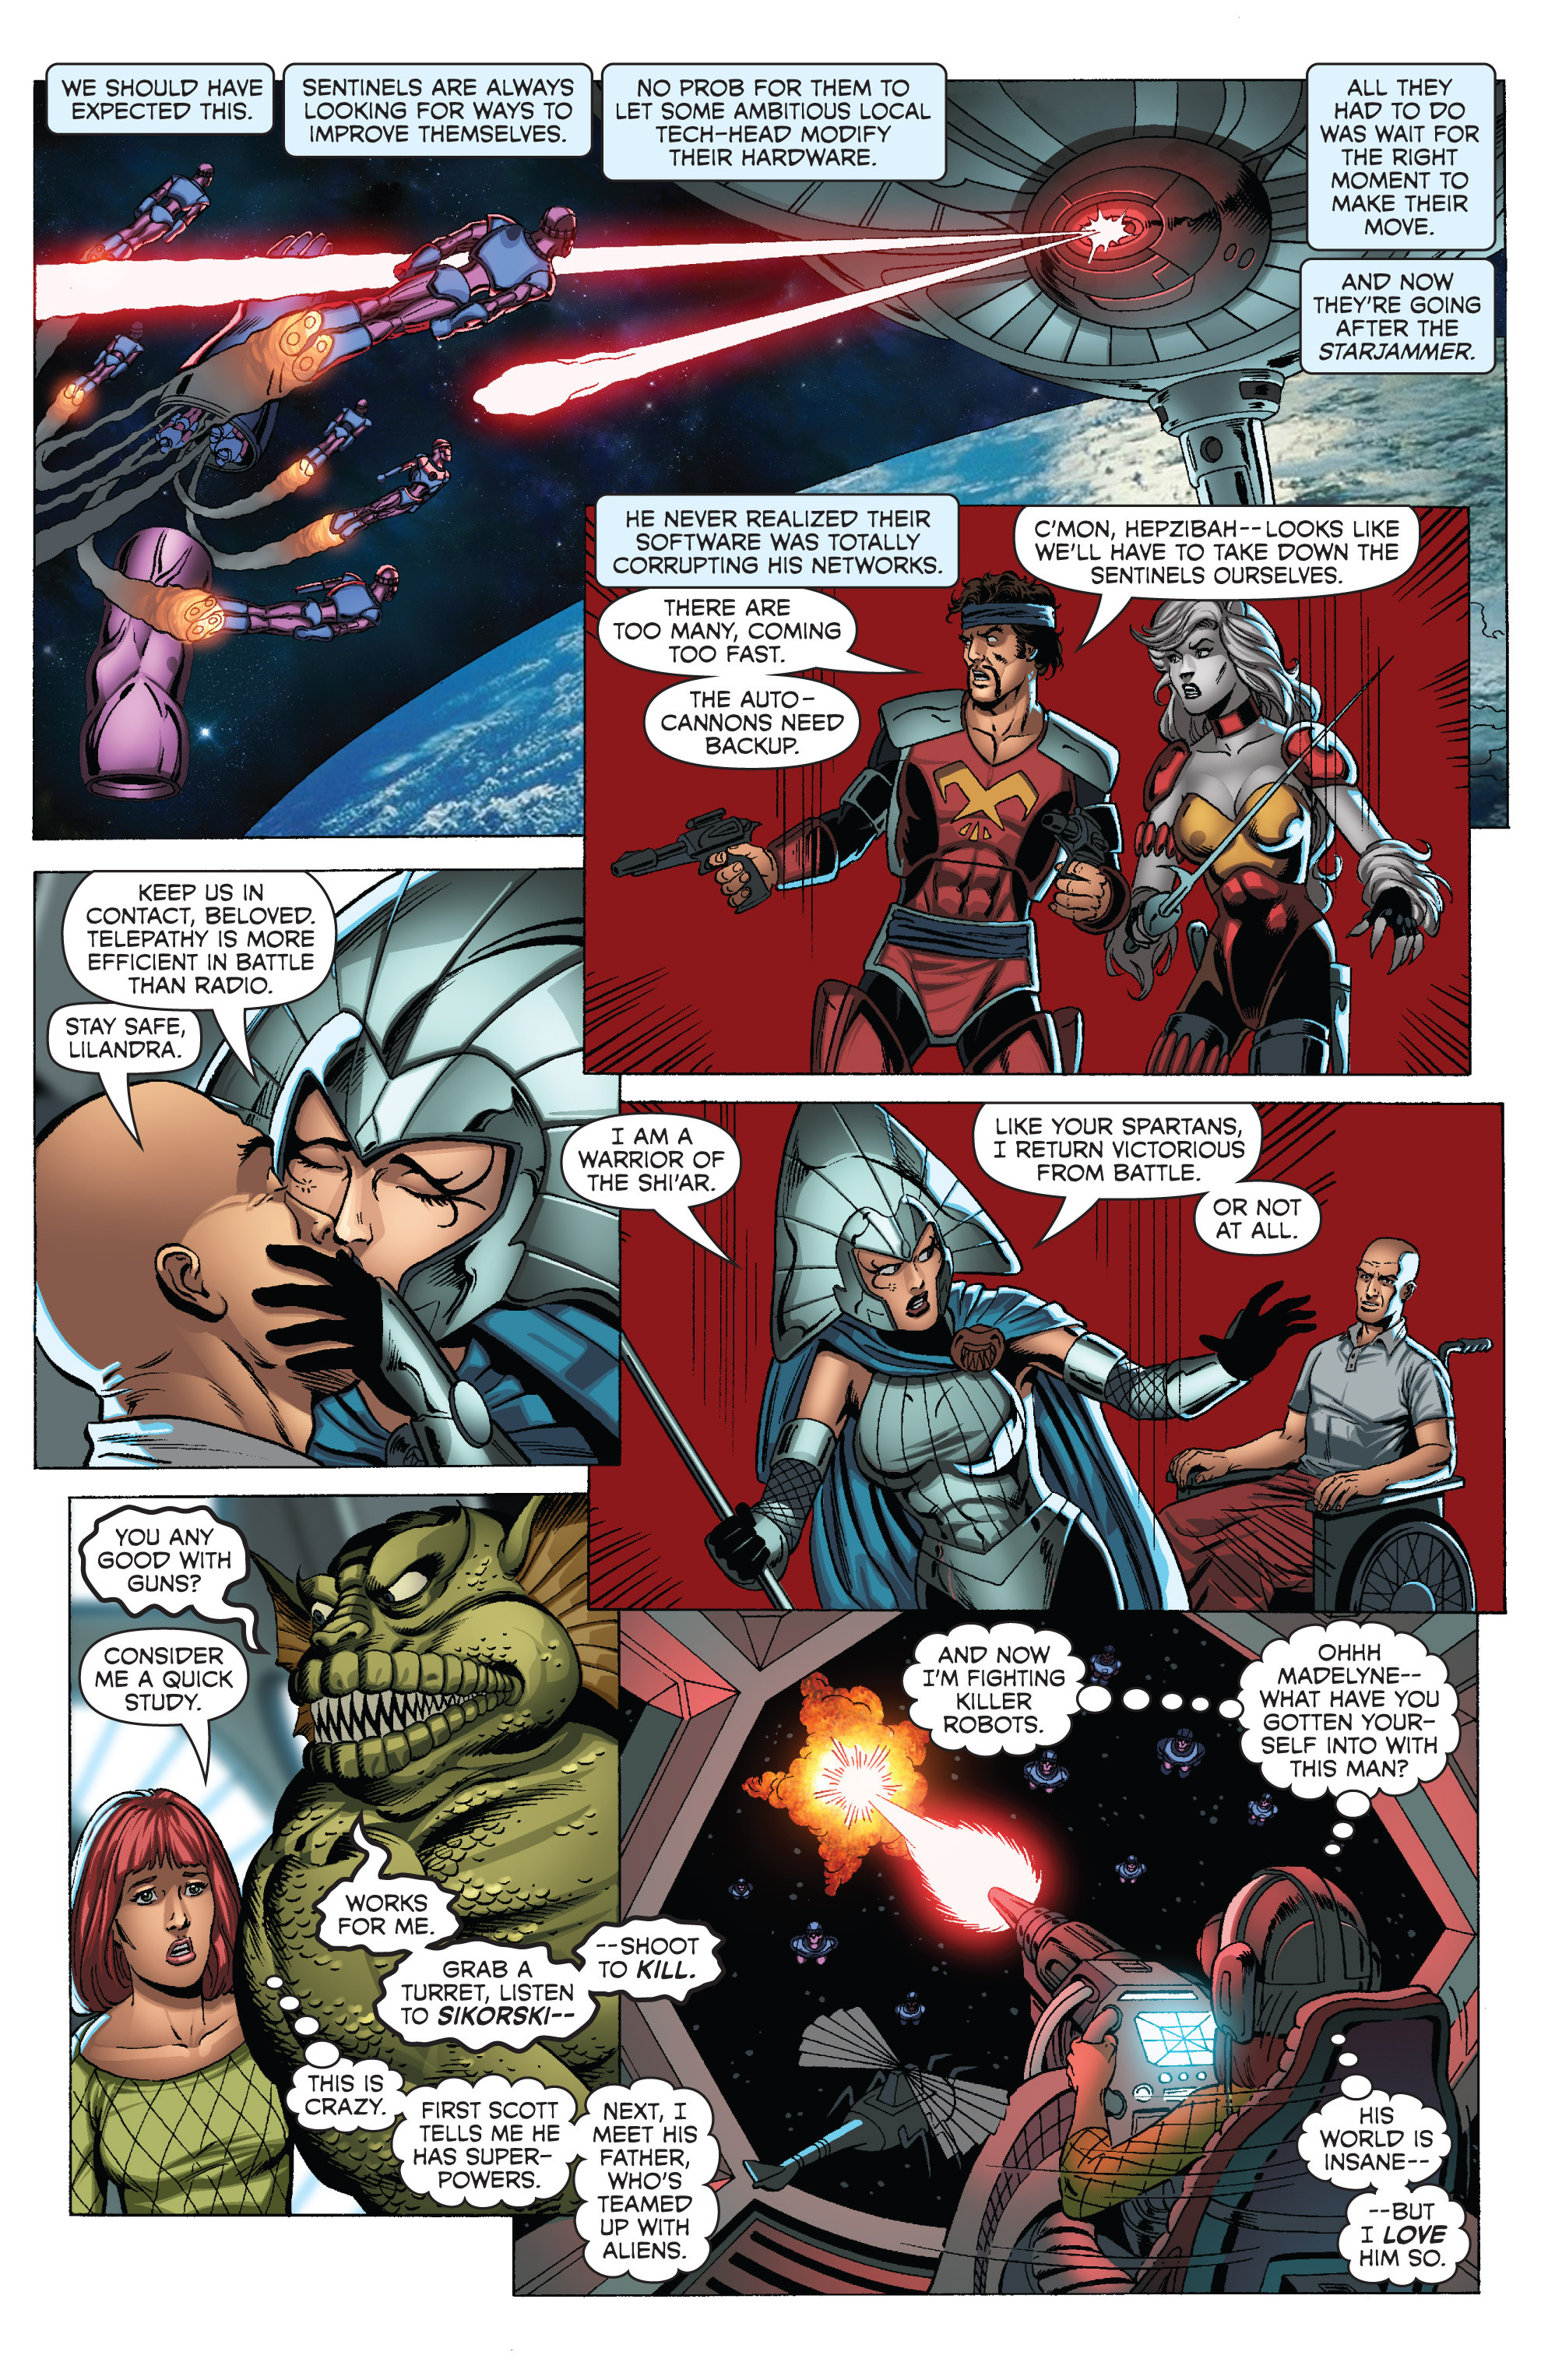 Read online All-New X-Men (2013) comic -  Issue # _Special - All-Different - 89